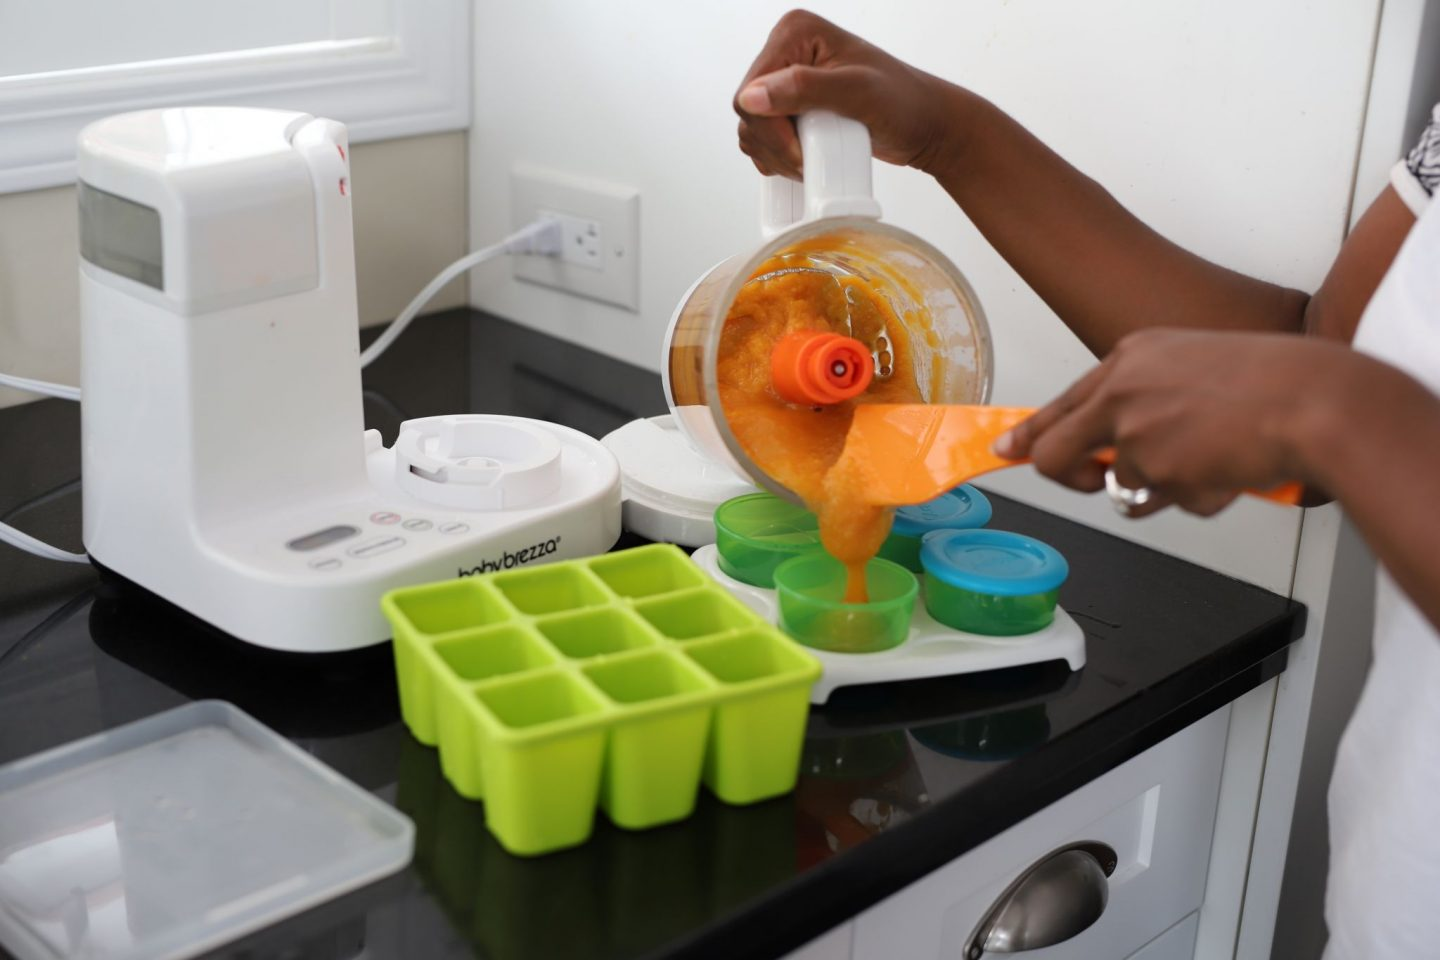 Preparing DIY baby food for storage by pouring pureed food in Nuby food storage containers